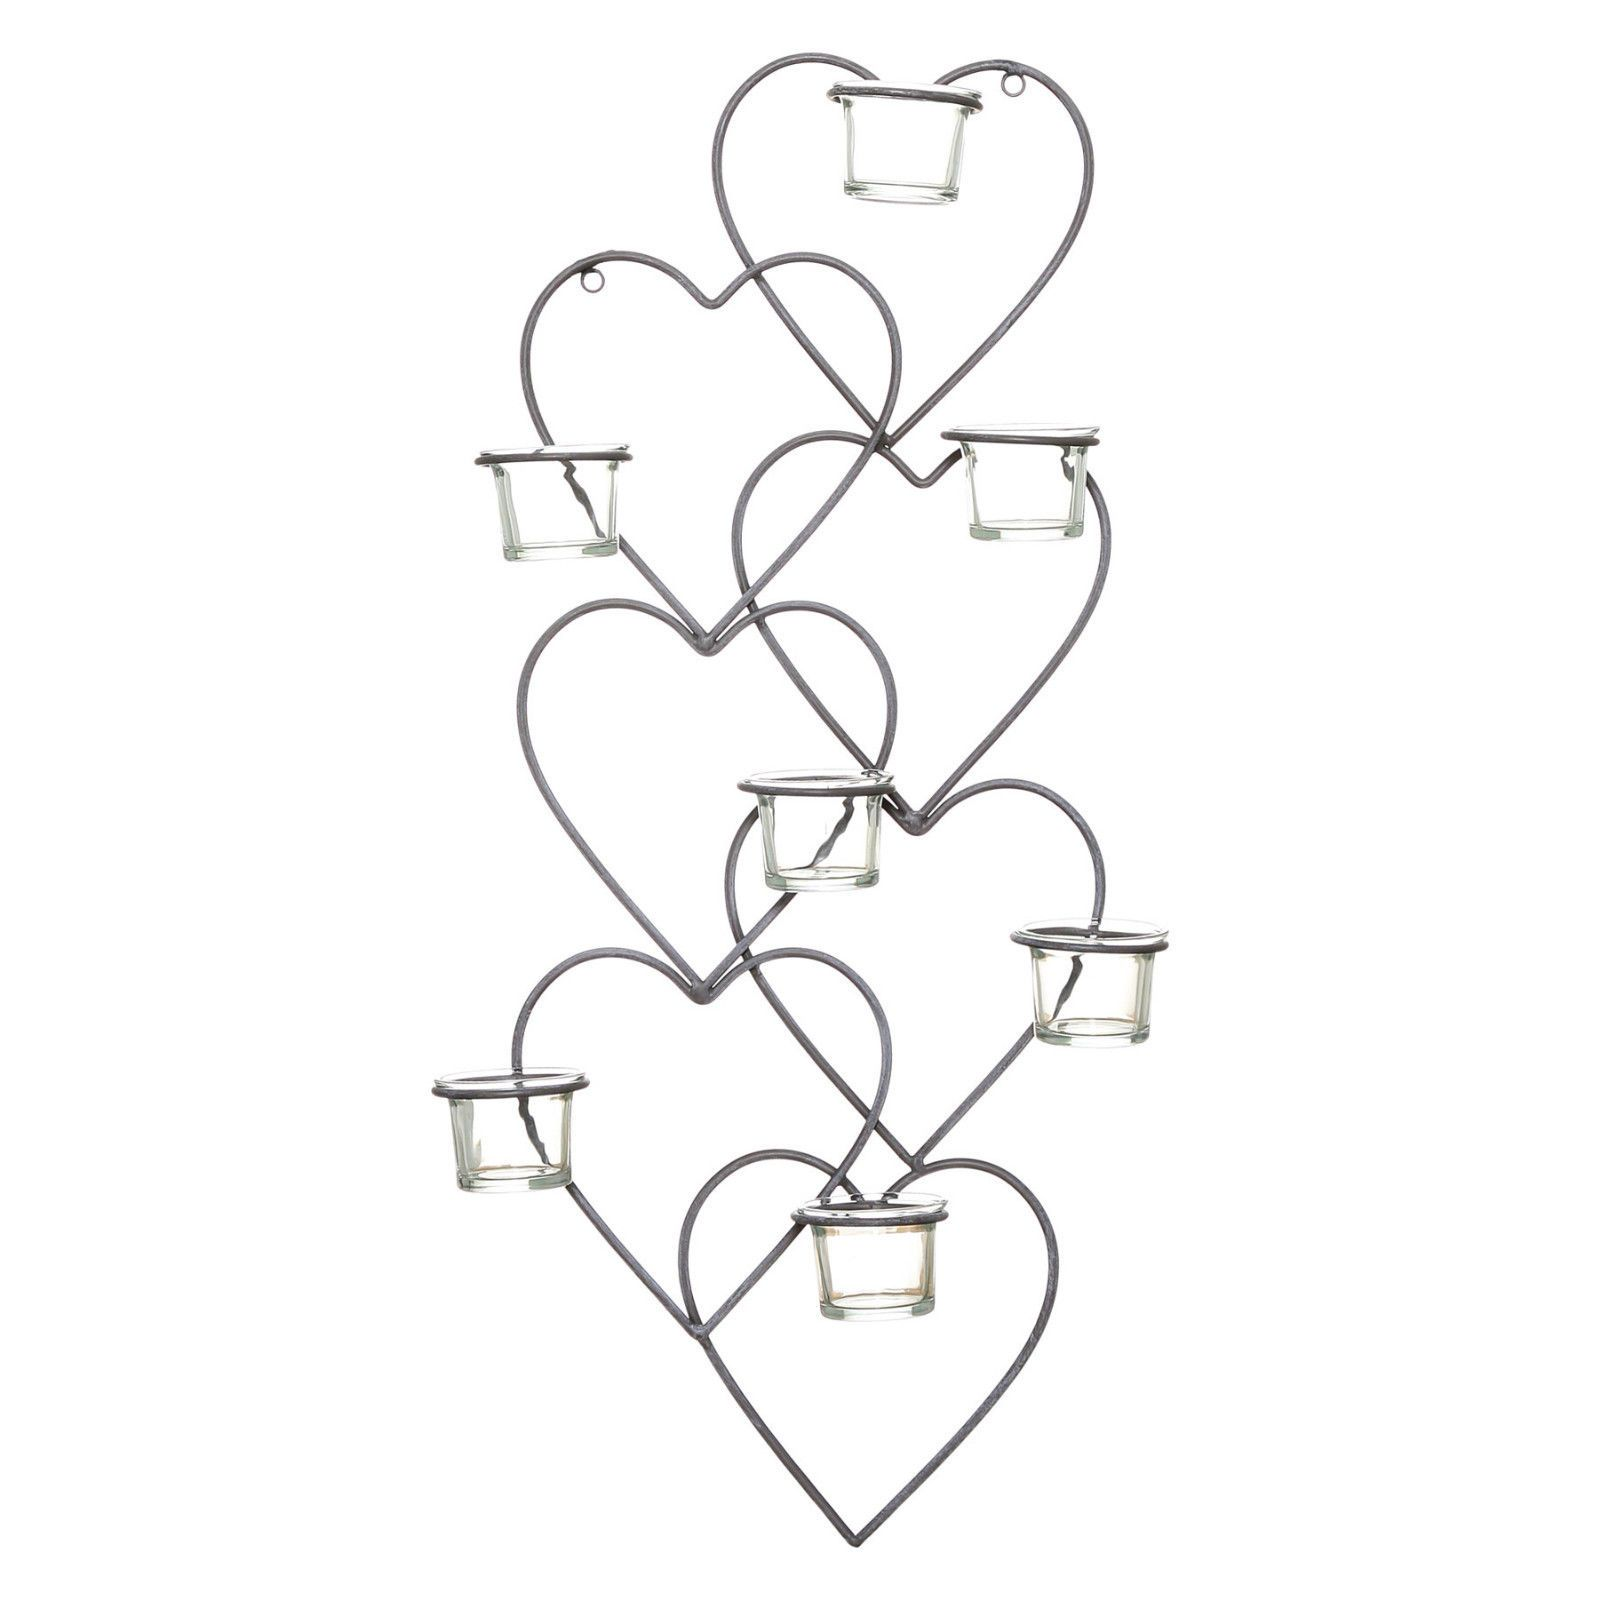 Cm vintage metal u glass love heart tea light wall art sconce